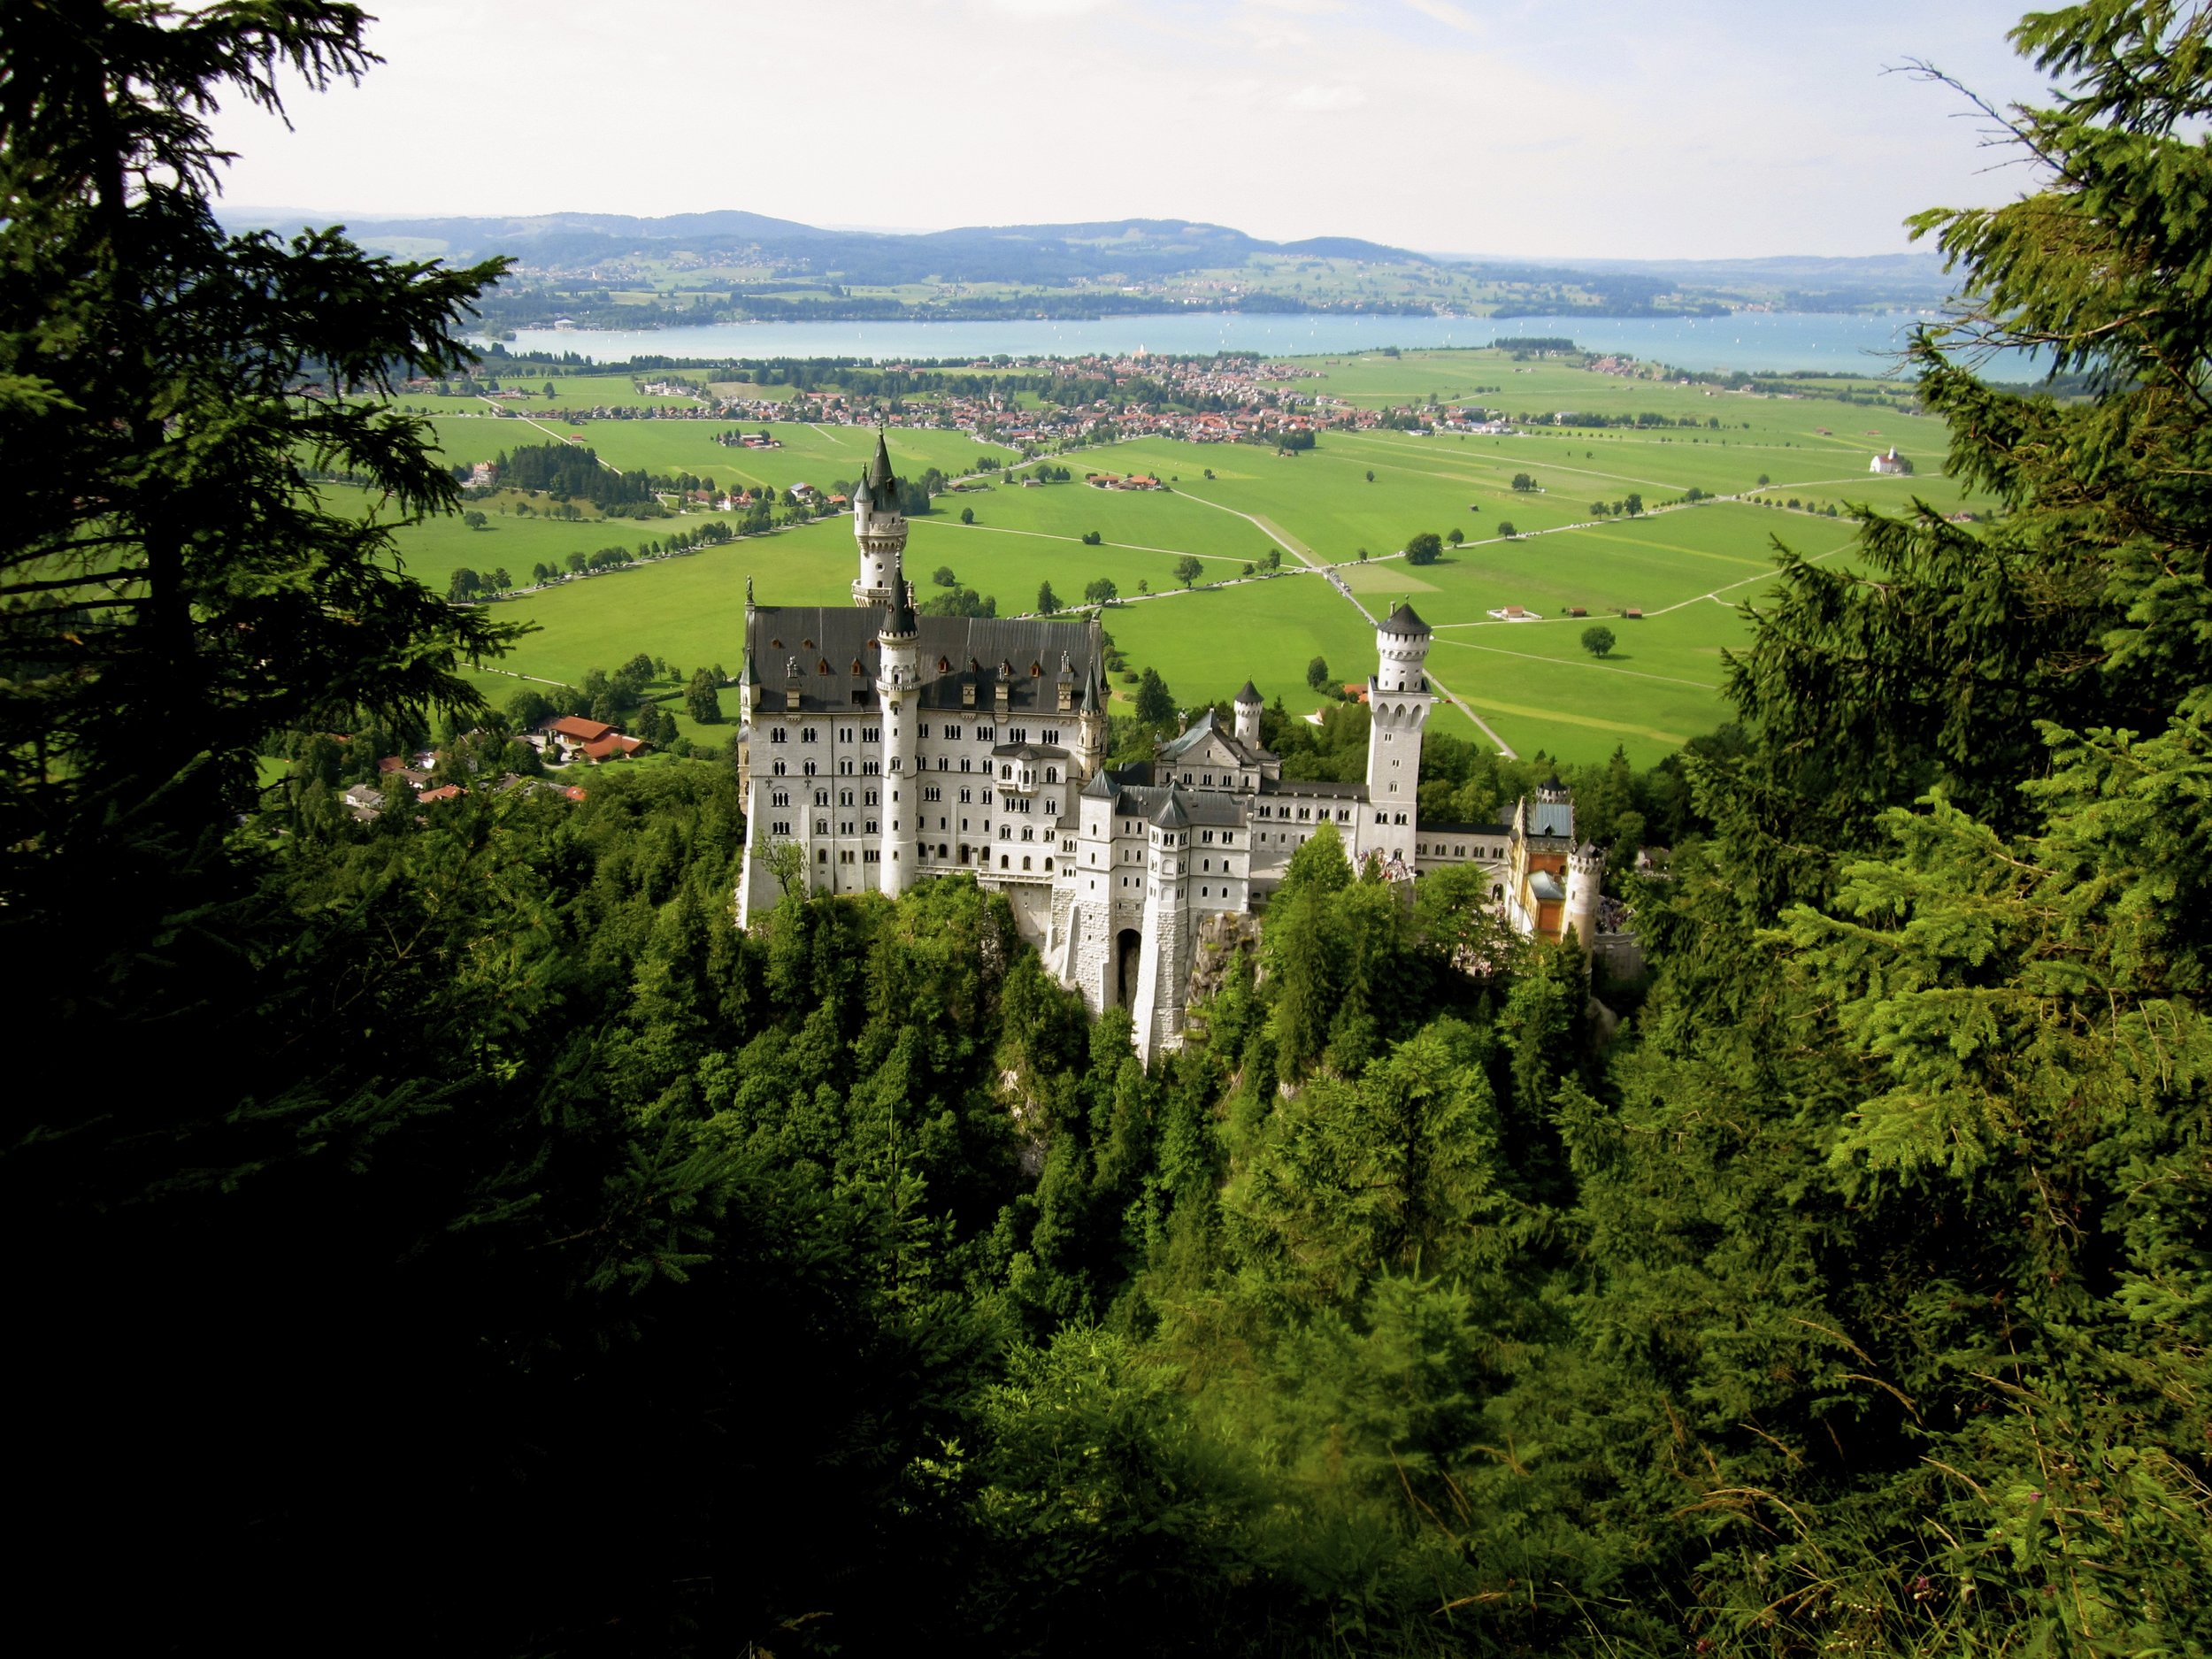 STRAIGHT OUTTA FAIRYTALES - The mountain town of Füssen is home to the famous Neuschwanstein Castle. Does it look familiar? Maybe that's because Walt Disney was so inspired by Neuschwanstein's fairytale design and architecture, he used it to create the Cinderella castle in the cartoon film in the 50's, which led to the inspiration for the Disney logo, as well as the Cinderella Castle at Disneyworld and Disneylands around the world!